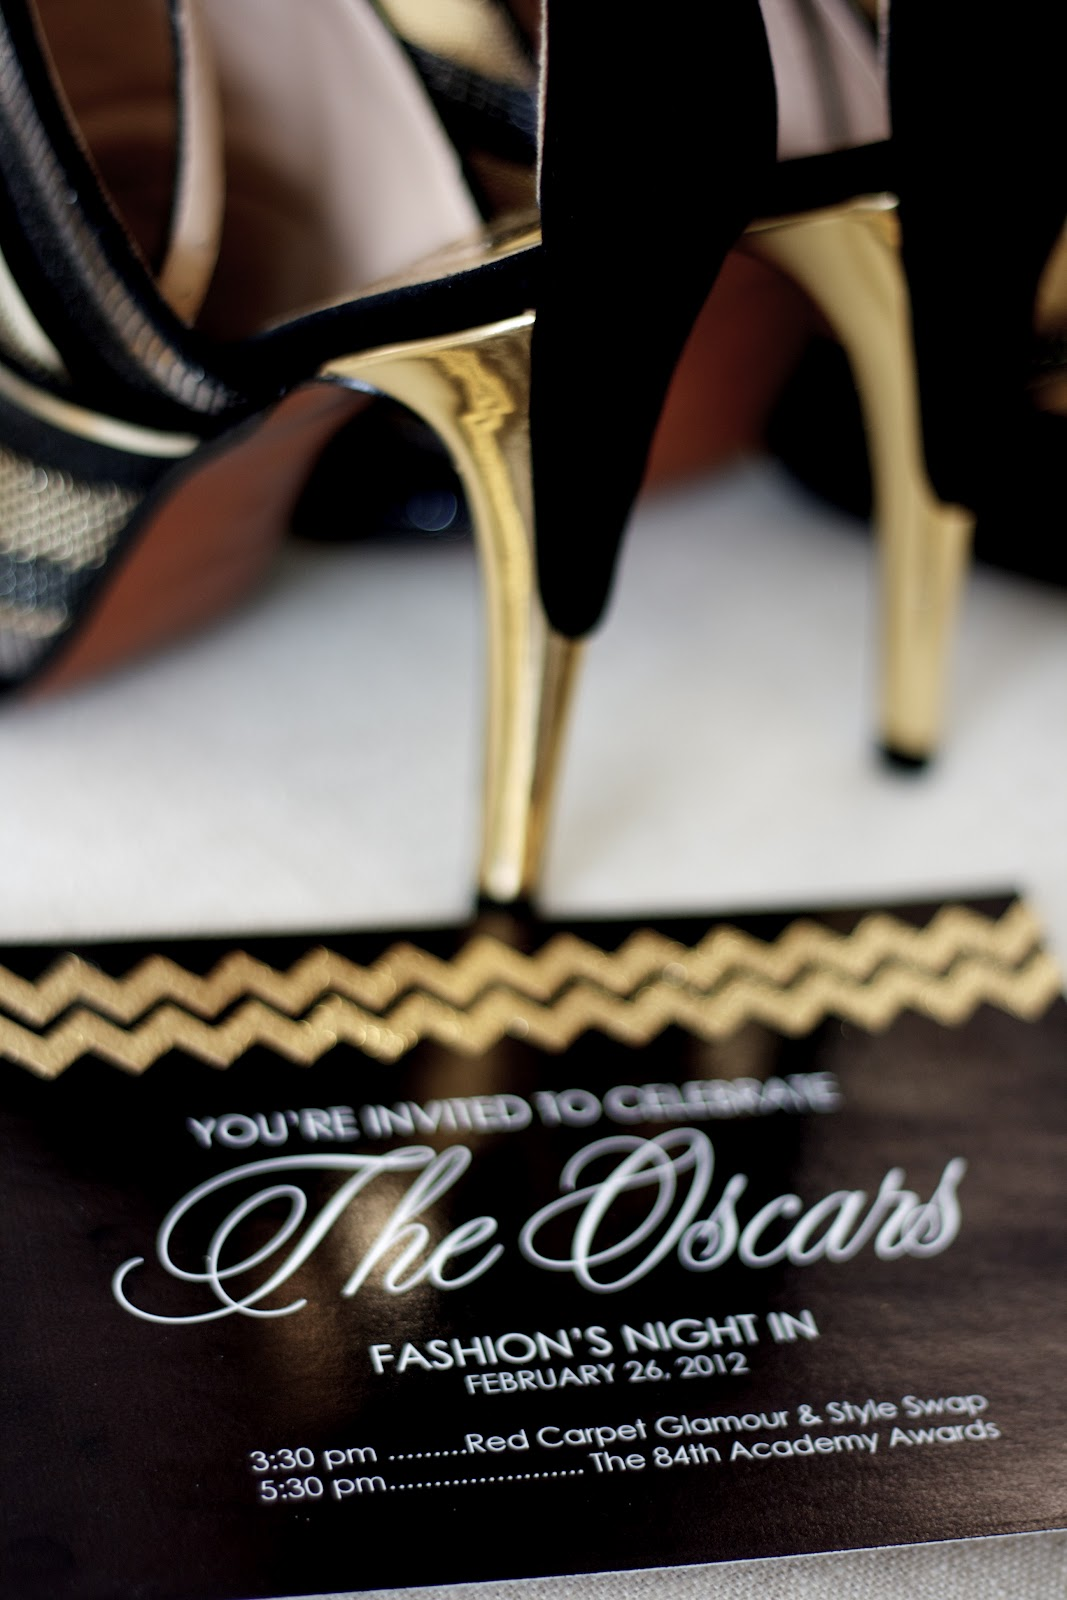 Fashion's Night In: The Oscars 2012